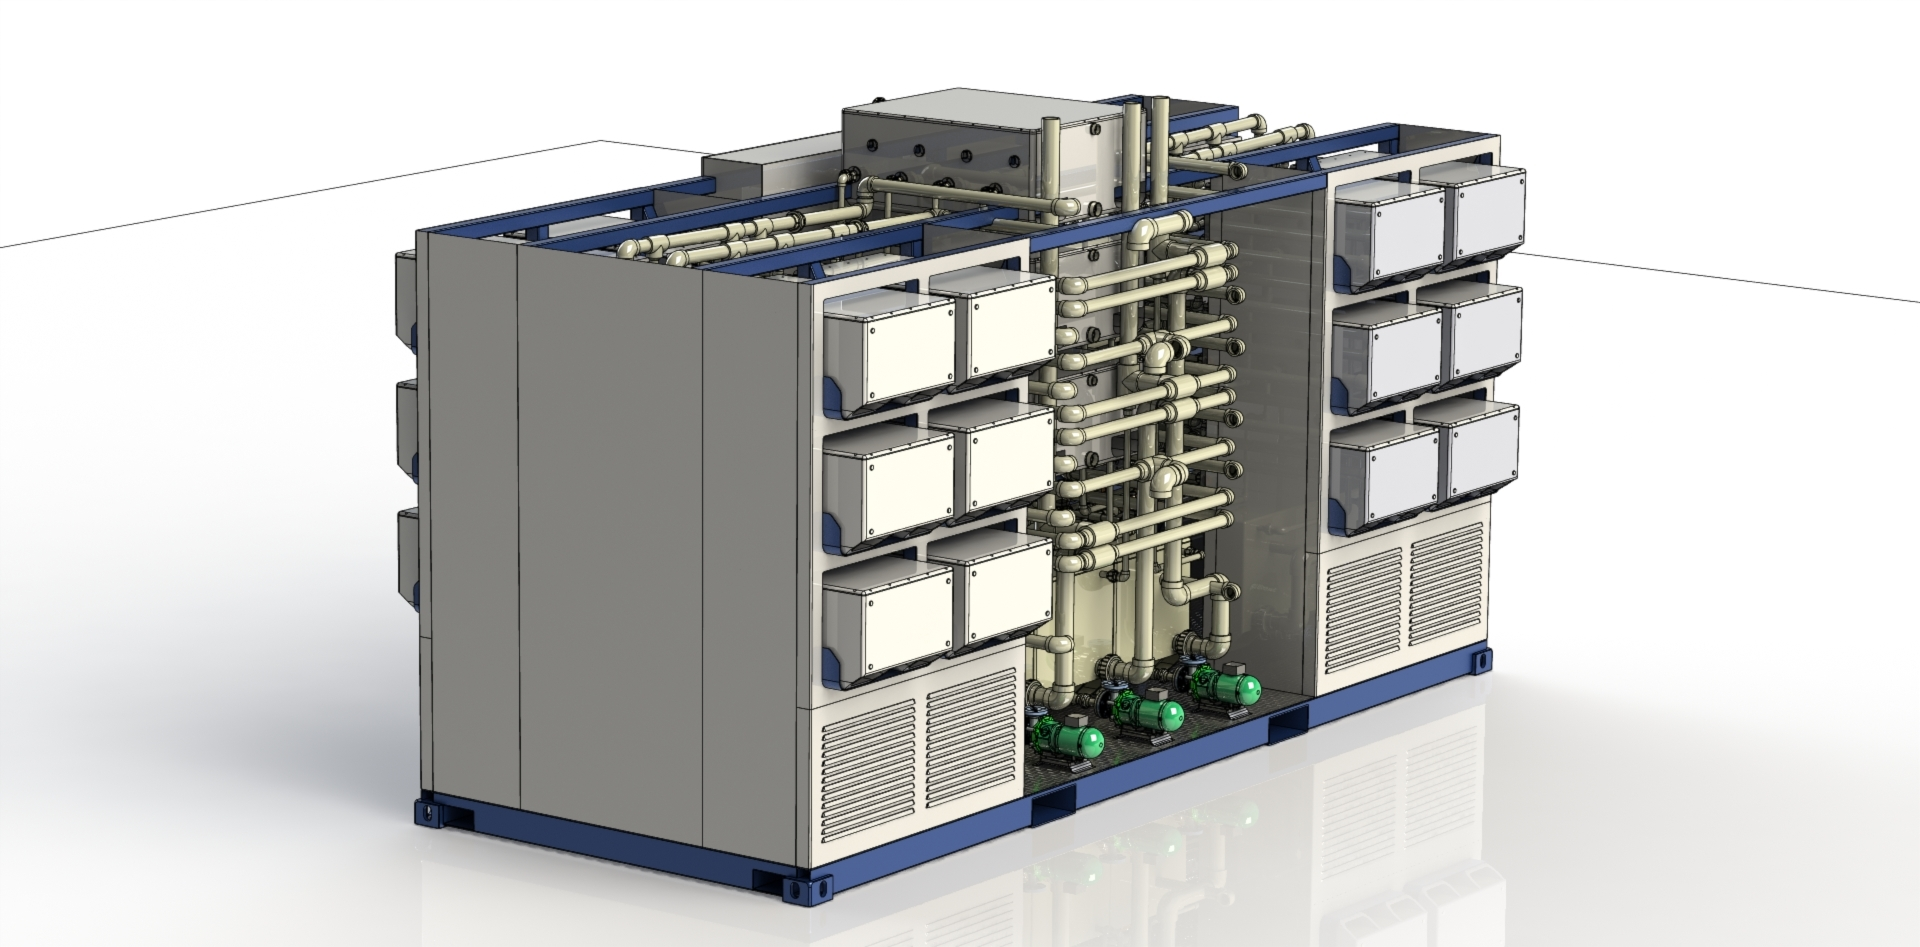 Battery technology - like AFC Energy industrial fuel cells - will boom in decades to come